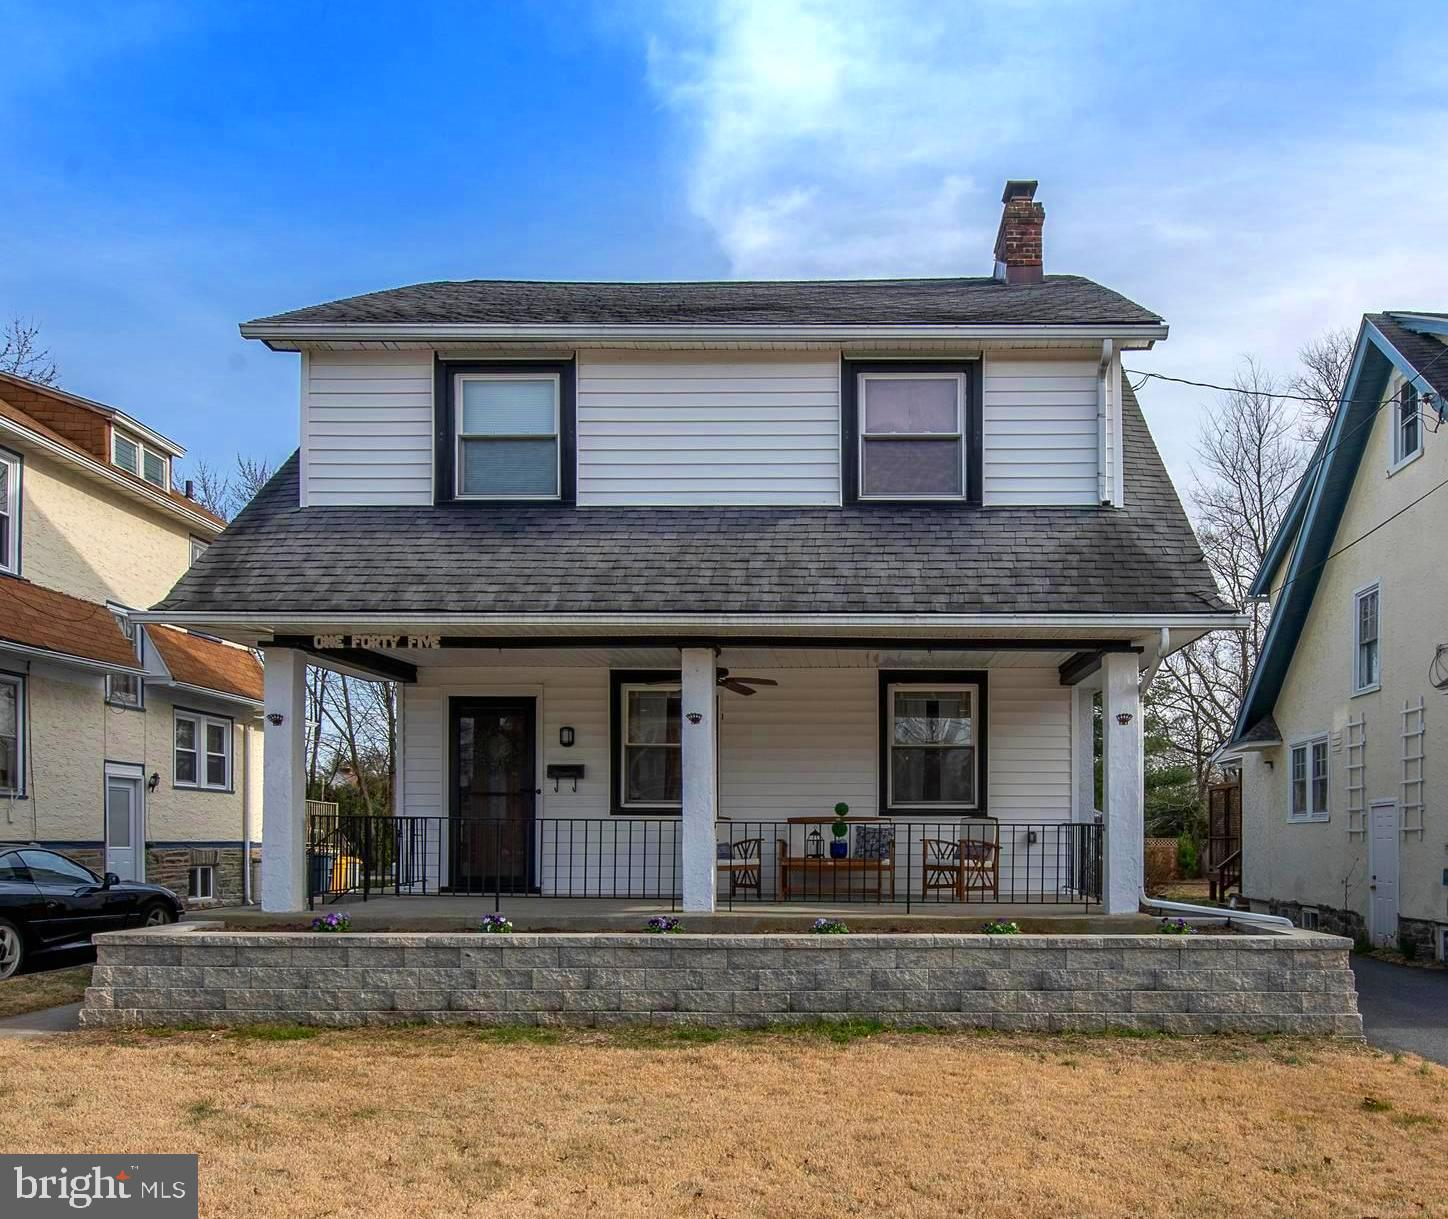 Welcome home to 145 Grandview Road, a charming completely move in ready colonial home in a great walk to everything location in Ardmore offers four bedrooms, one full and one half bath, a private fenced back yard, driveway and one car detached garage. This home has been updated throughout in the past three years. Upon arriving at the property you are greeted by a brand new stone retaining wall that provides the perfect size flower bed alongside the gated full length front porch, perfect for three seasons of enjoyment. Enter through the front door to a spacious living room with refinished hardwood floors and a stone front gas fireplace. The beautiful hardwood floors continue into the Dining Room with brushed nickel five light fixture, and is open to the kitchen with new hardwood floors. The kitchen is a cook's delight with beautiful cabinetry, granite countertops, new Stainless Appliances: GE French door refrigerator, Whirlpool Dishwasher and 5 burner gas oven with Frigidaire microwave above. A beautiful window over the stainless under mount sink with gooseneck faucet lets in abundant natural light. Conveniently located off the kitchen you will find a powder room, mudroom/laundry room with new stacked Whirlpool front loading Washer and Dryer and access to the fenced in back yard with patio and storage shed.  Take the turned staircase with neutral carpet runner to the second floor where the refinished hardwood floors continue into all four bedrooms, three with new lit ceiling fans. A lovely full bath offers a tub shower combination and vanity sink top with updated faucet and a linen closet. A door off the landing leads to a flight of stairs to the fully floored attic with tons of storage. Additional storage can be found in the basement accessed through the kitchen or a side door entry. A second laundry hook up is available in the lower level.  The Updates to this home include: 2018 full knob & tube removal and electrical system update including recessed lighting and n